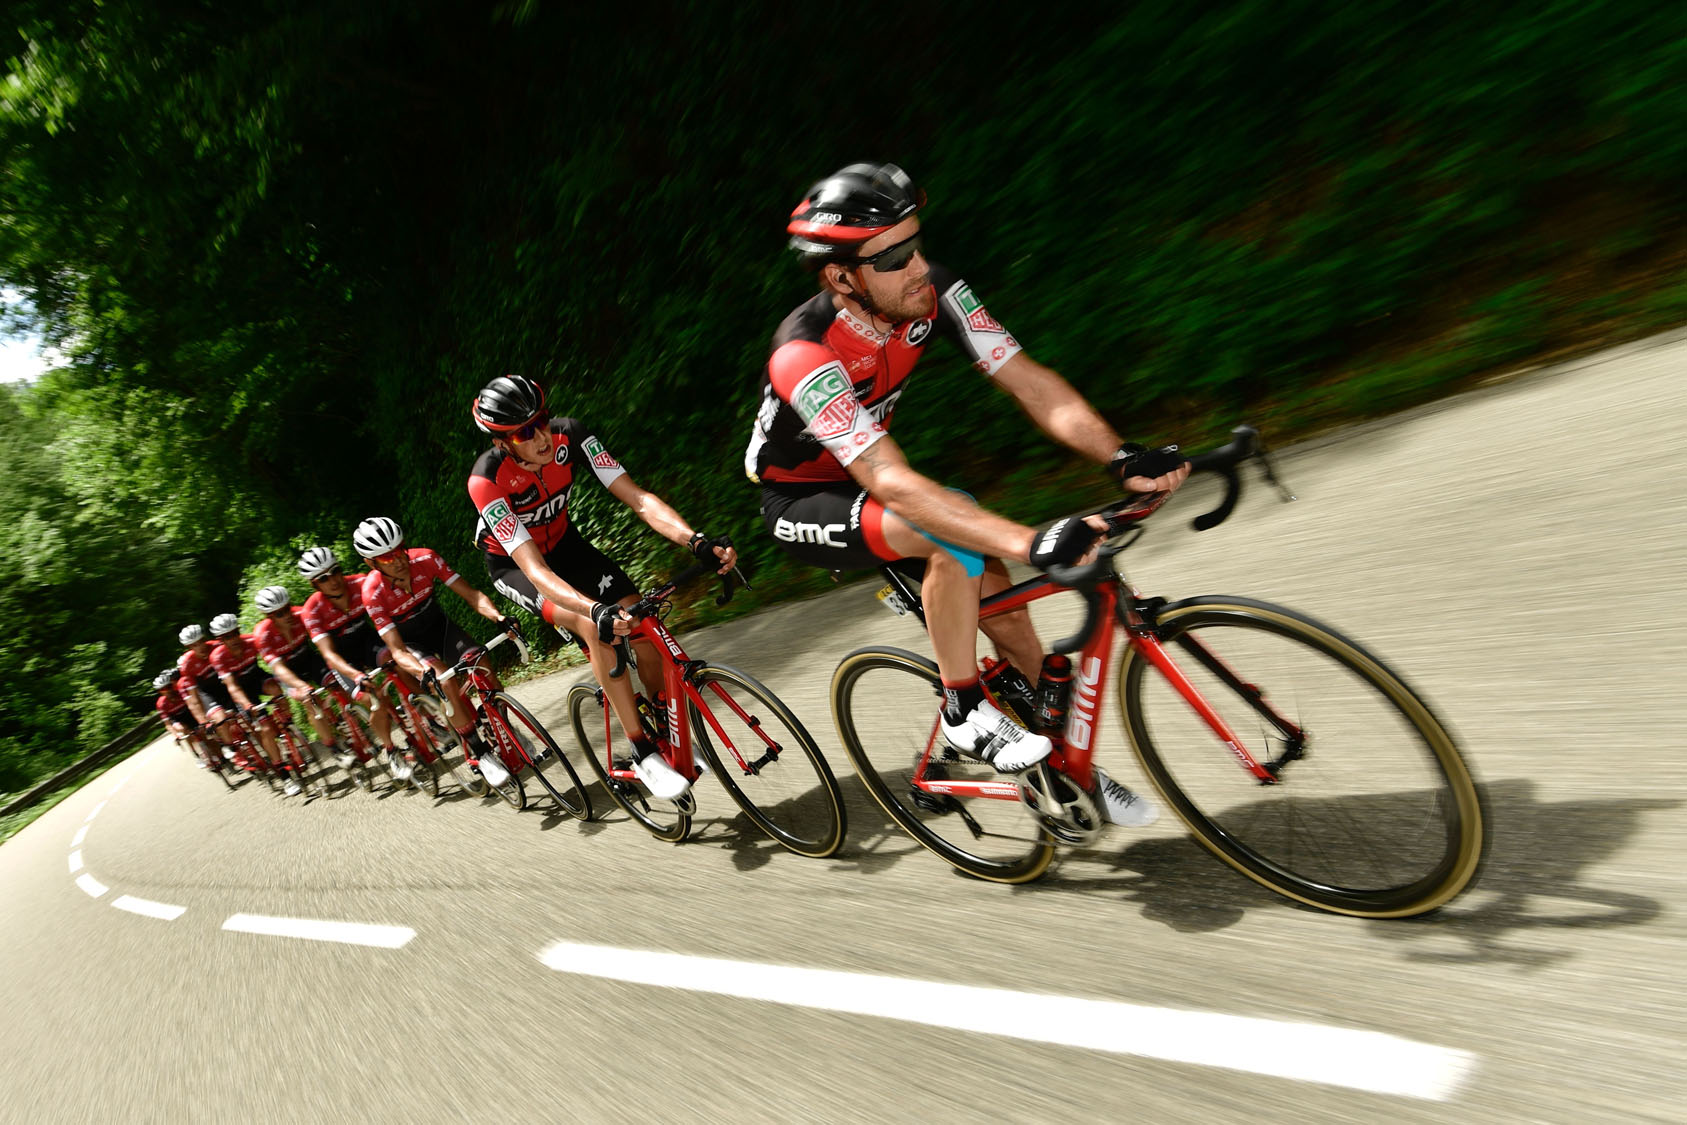 Criterium du Dauphine cycling race in France